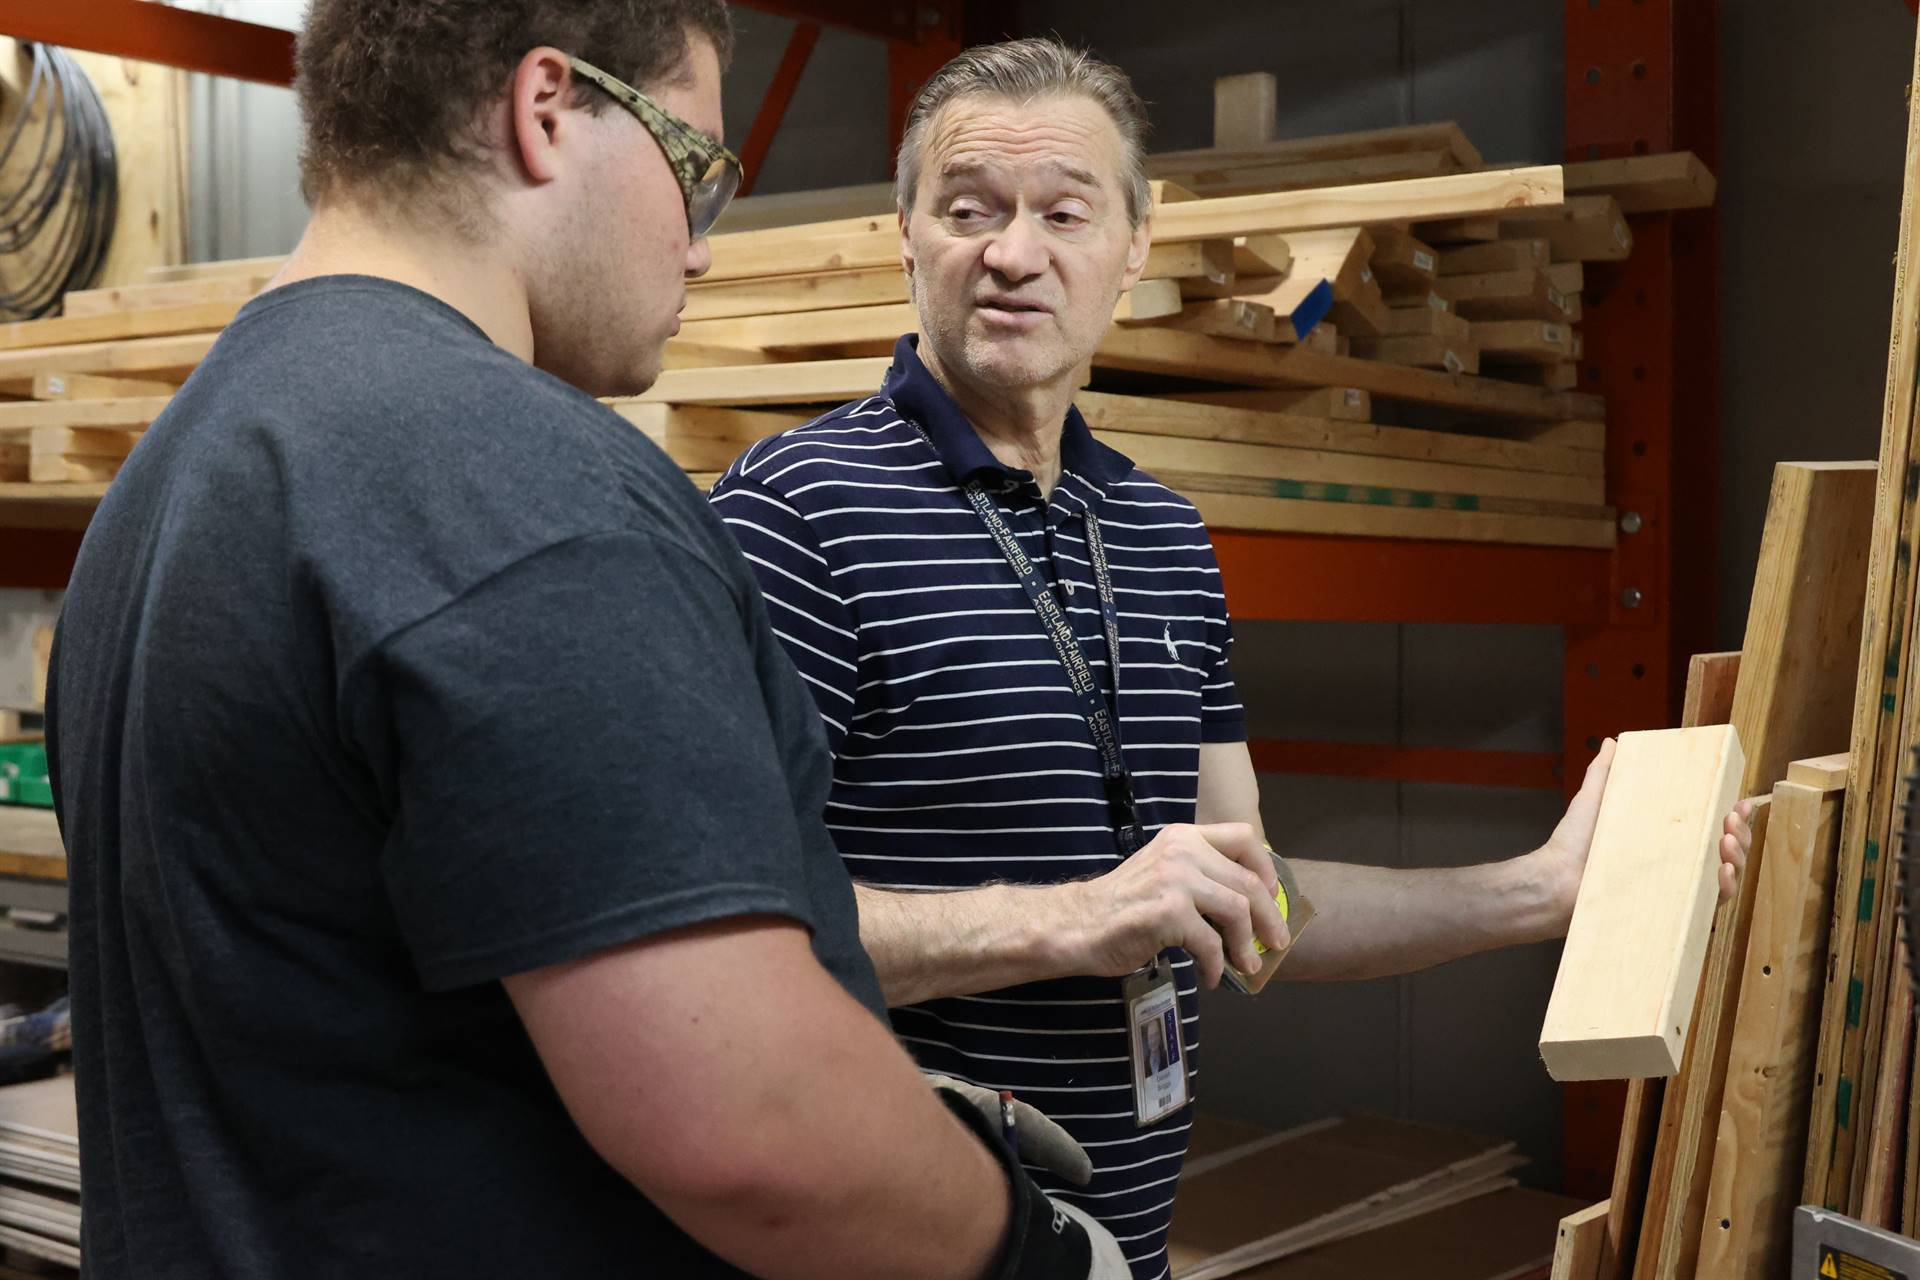 instructor talking to student while holding wood block